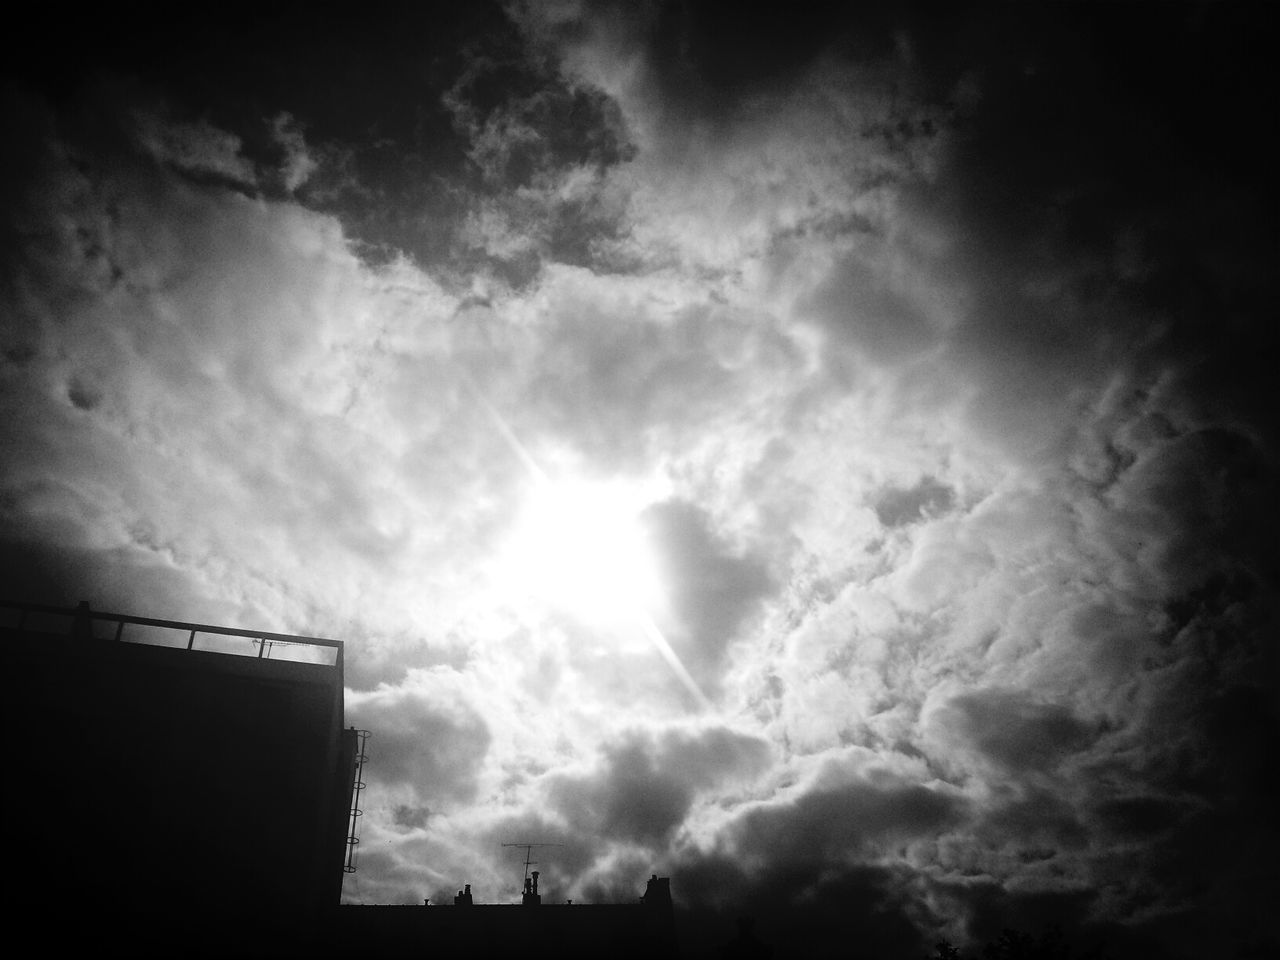 sky, low angle view, cloud - sky, no people, silhouette, beauty in nature, outdoors, nature, day